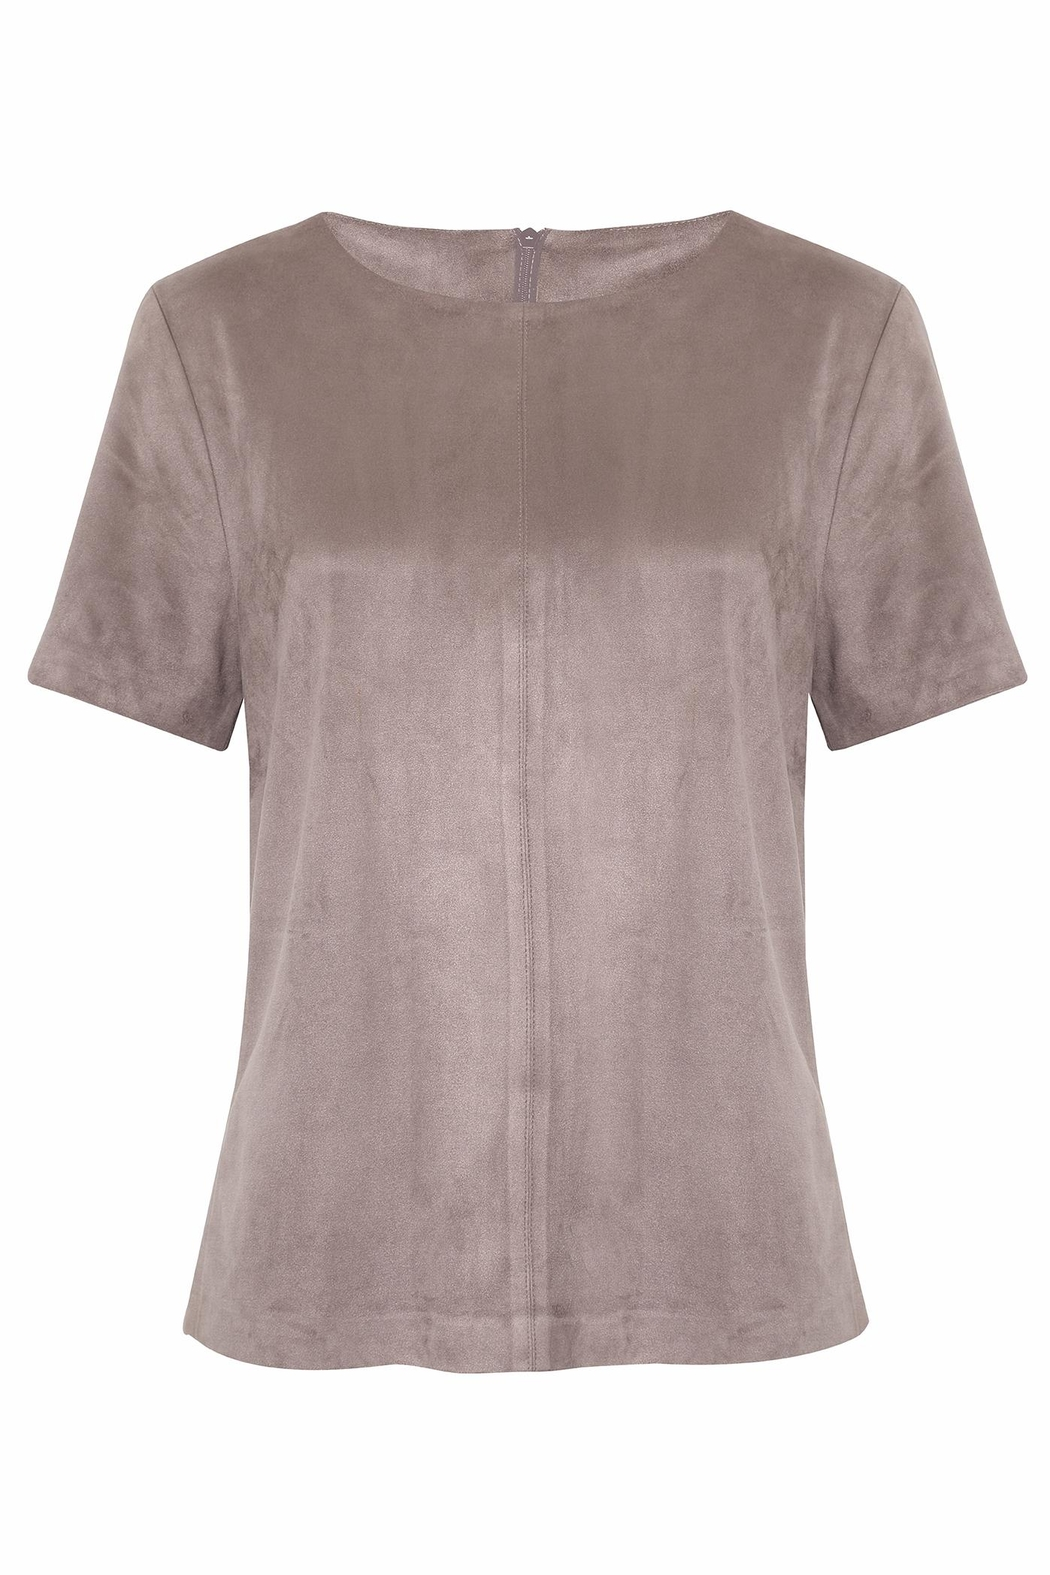 UNREAL FUR Bewitched Suede Tee - Front Cropped Image